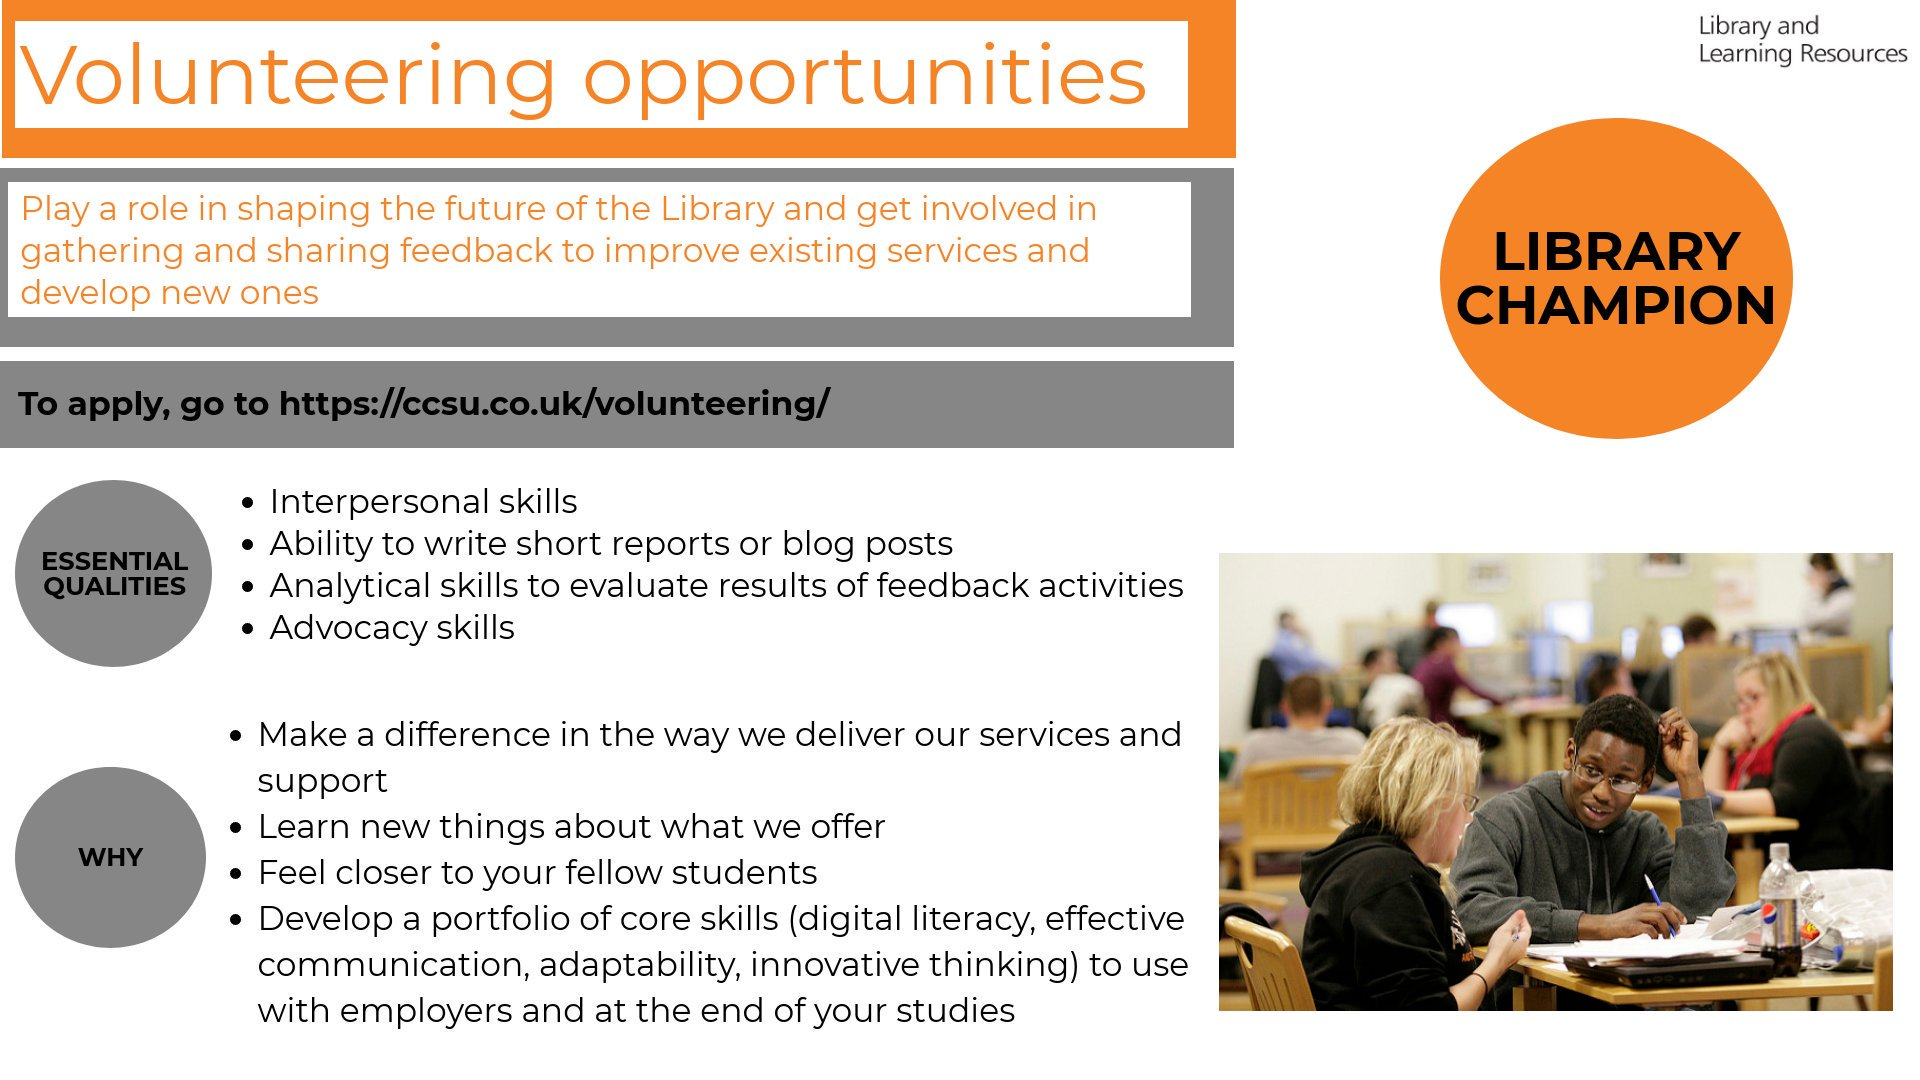 Looking for an interesting volunteering opportunity? Become a Library Champion